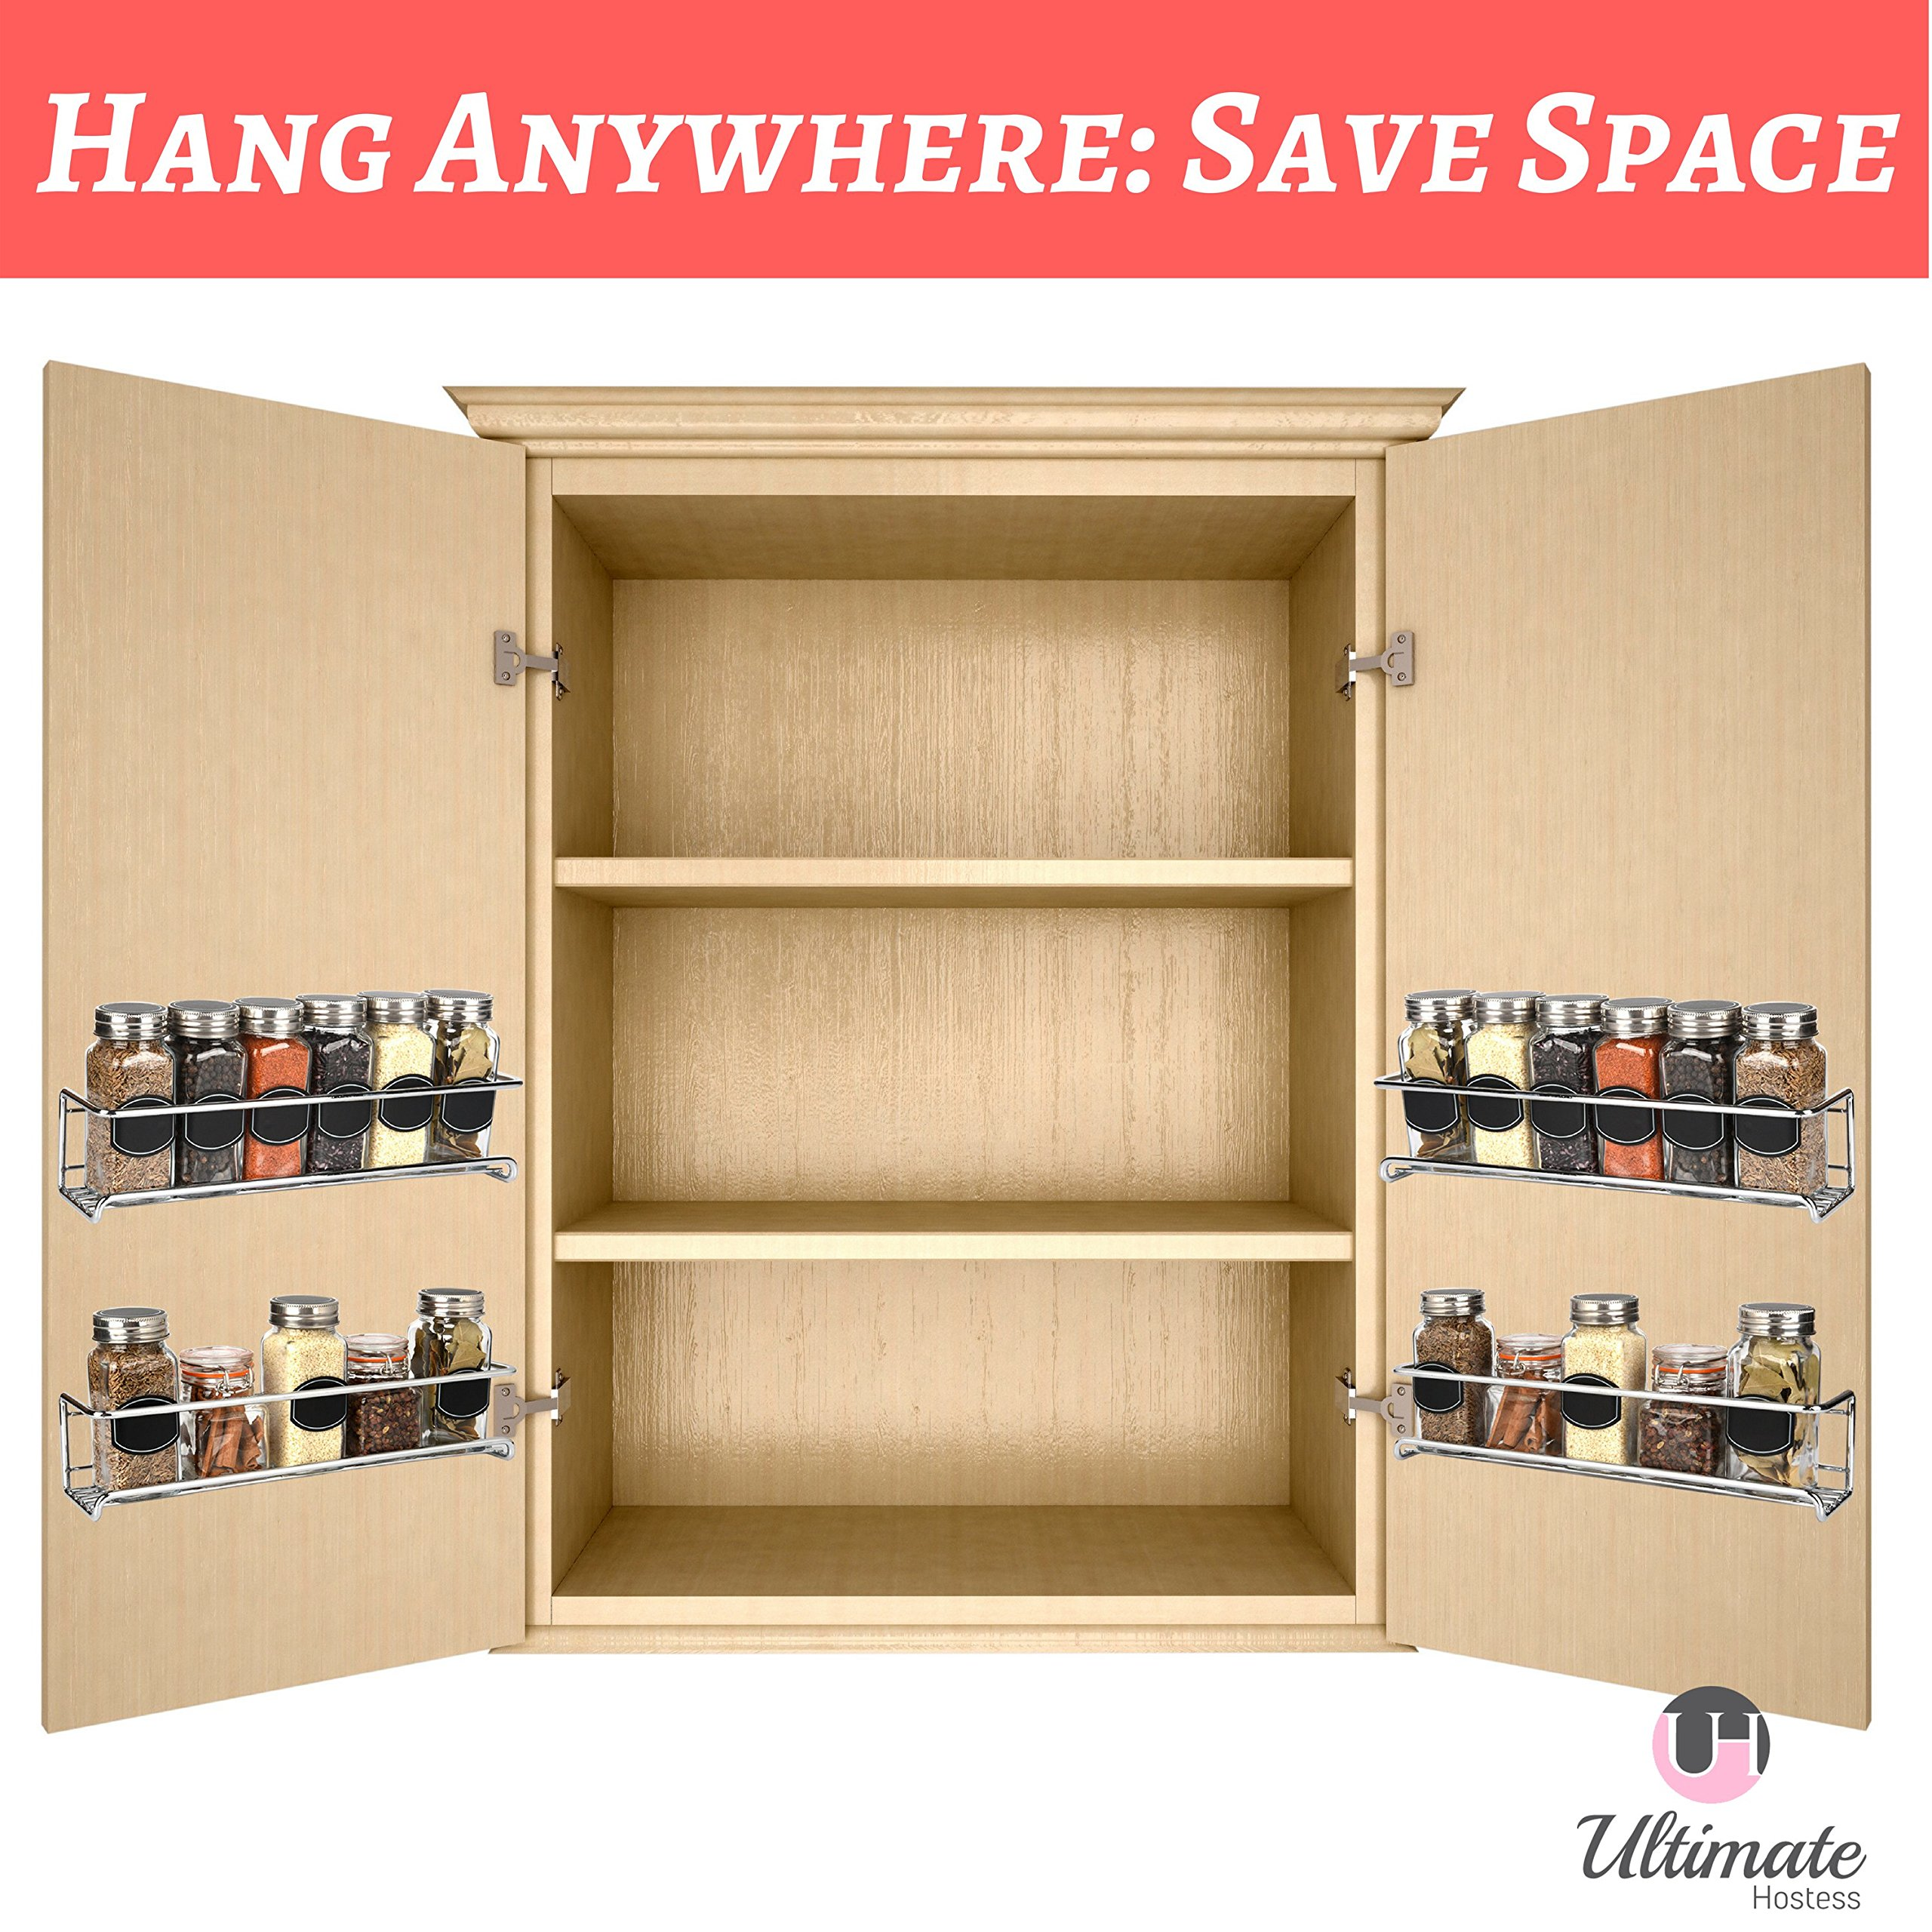 Spice Rack Organizer for Cabinet, Door Mount, or Wall Mounted - Set of 4 Chrome Tiered Hanging Shelf for Spice Jars - Storage in Cupboard, Kitchen or Pantry - Display bottles on shelves, in cabinets by Ultimate Hostess (Image #6)